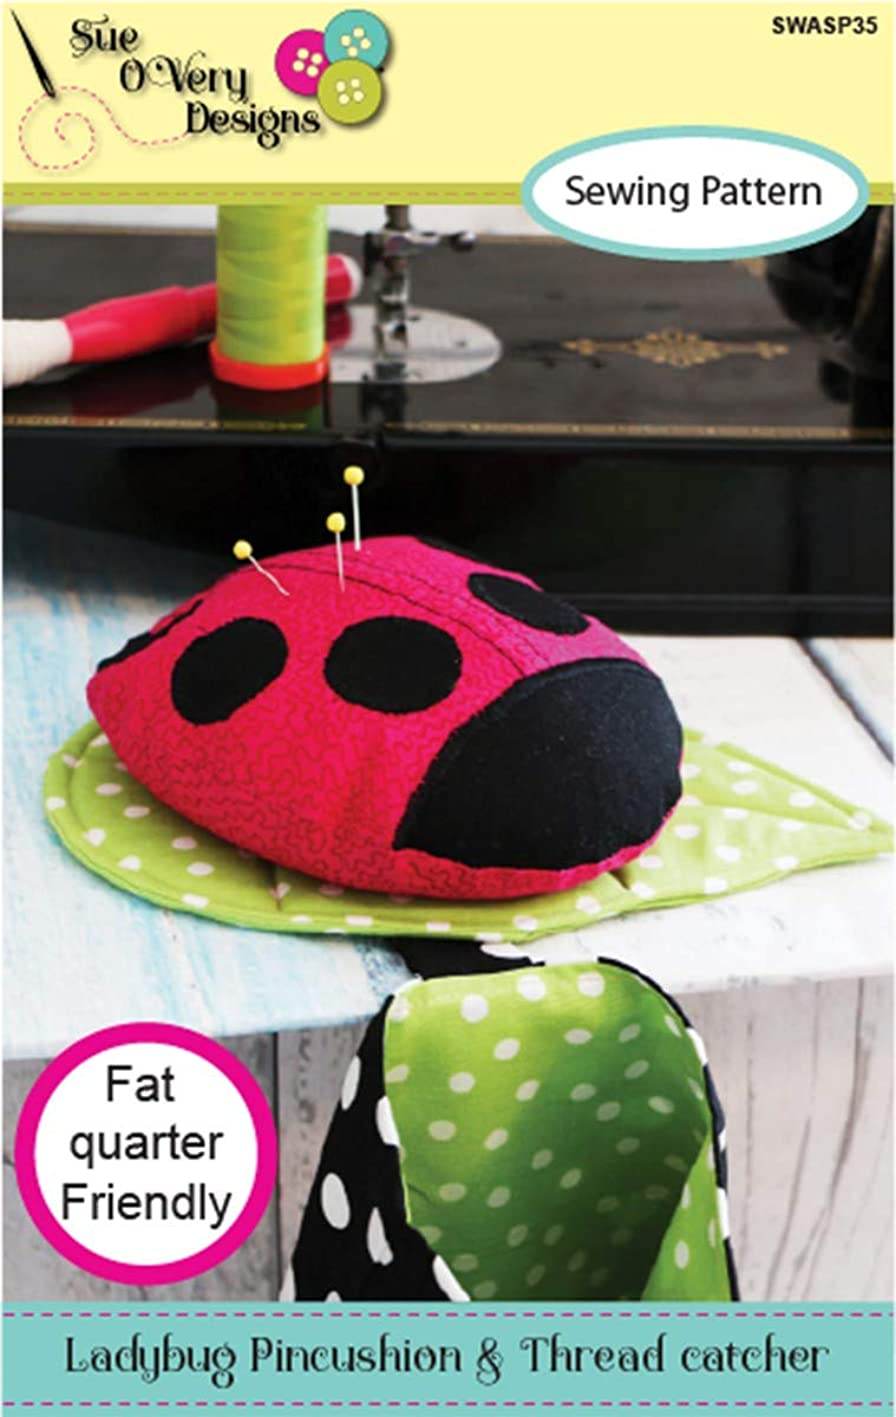 Sue O'Very Designs -Sealed With A Stitch SWASP35 Ladybug Pincushion and Thread Catcher Pattern vwbnzhpptdm238